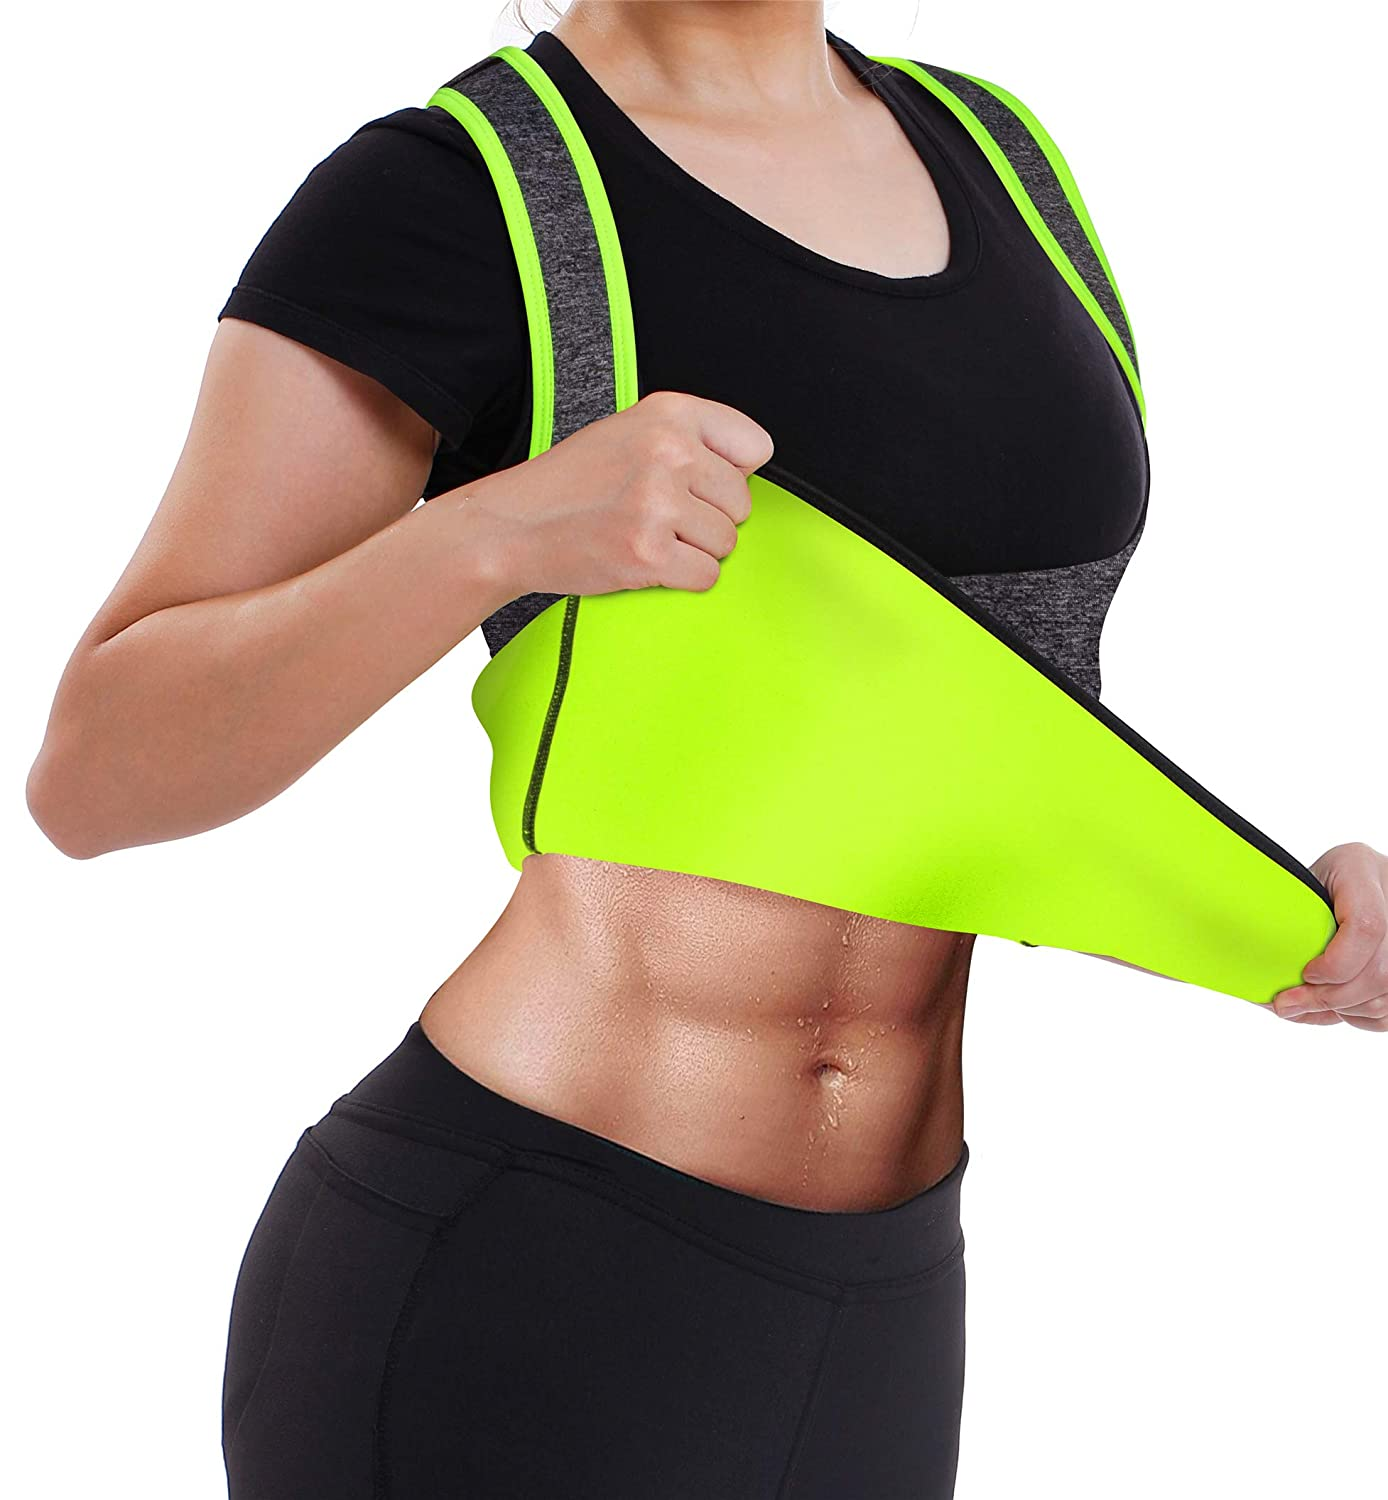 Women's No Zipper Hot Sweat Slimming Neoprene Shirt Vest Body Shapers for Fat Burner